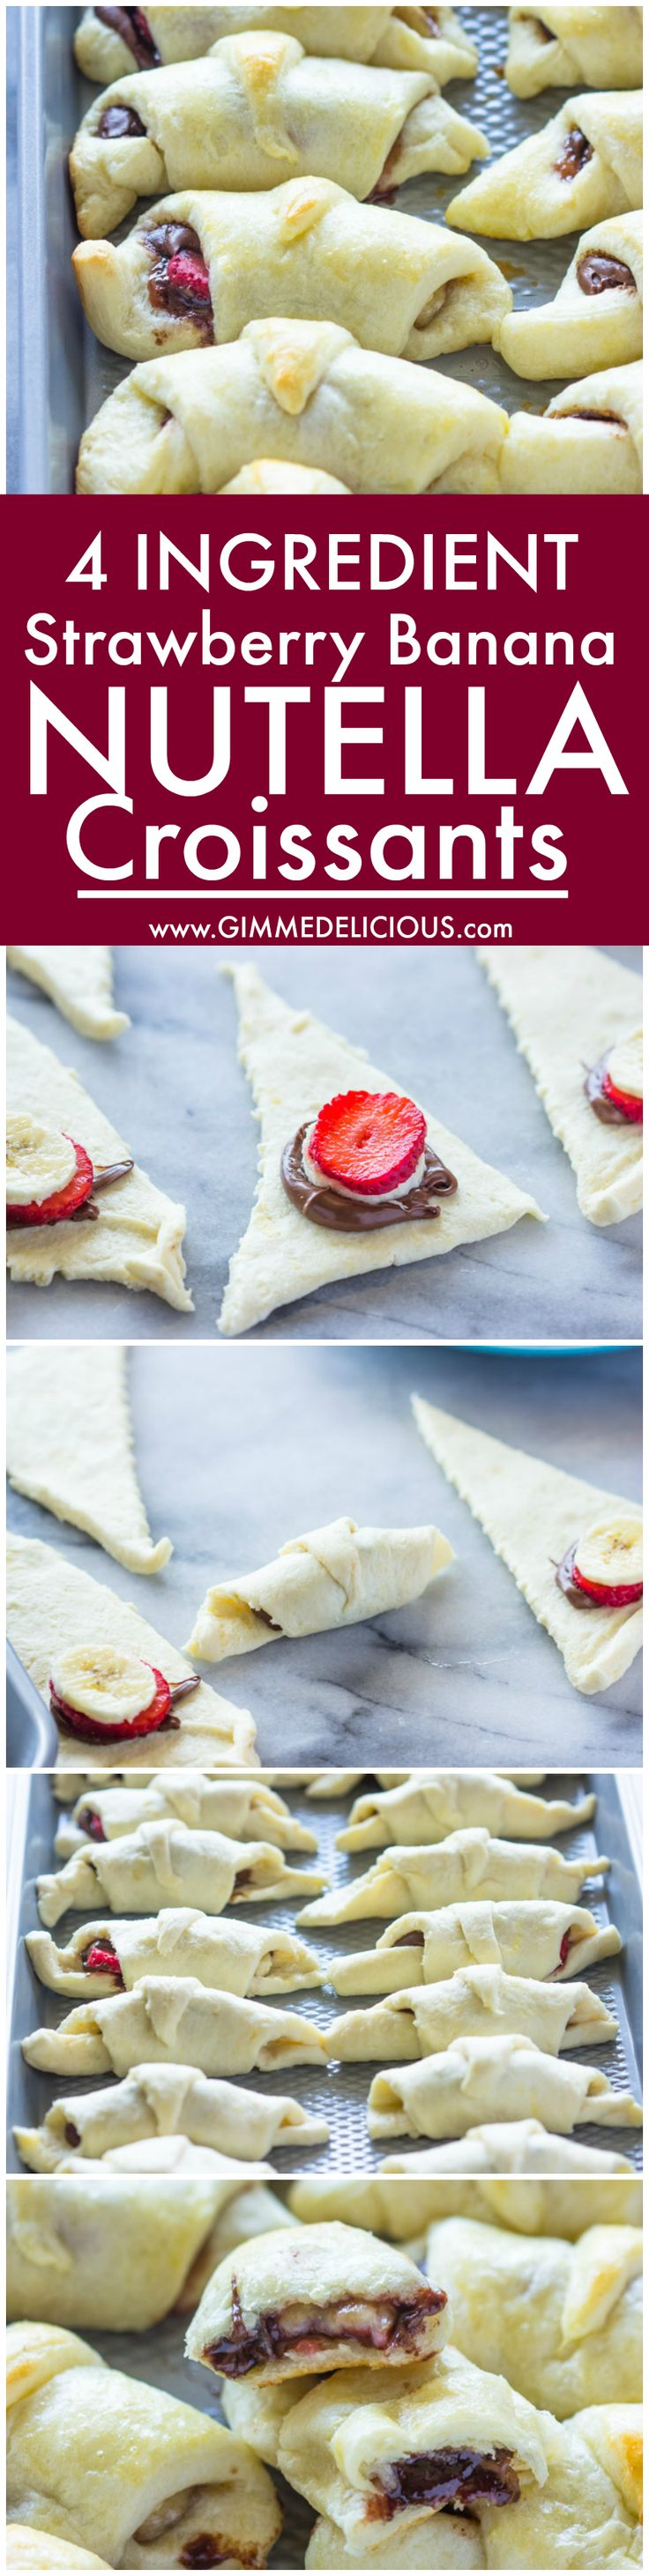 4 Ingredient Strawberry Banana Nutella Croissants   They are a great snack for breakfast, school, after school, the park, or just about anytime!